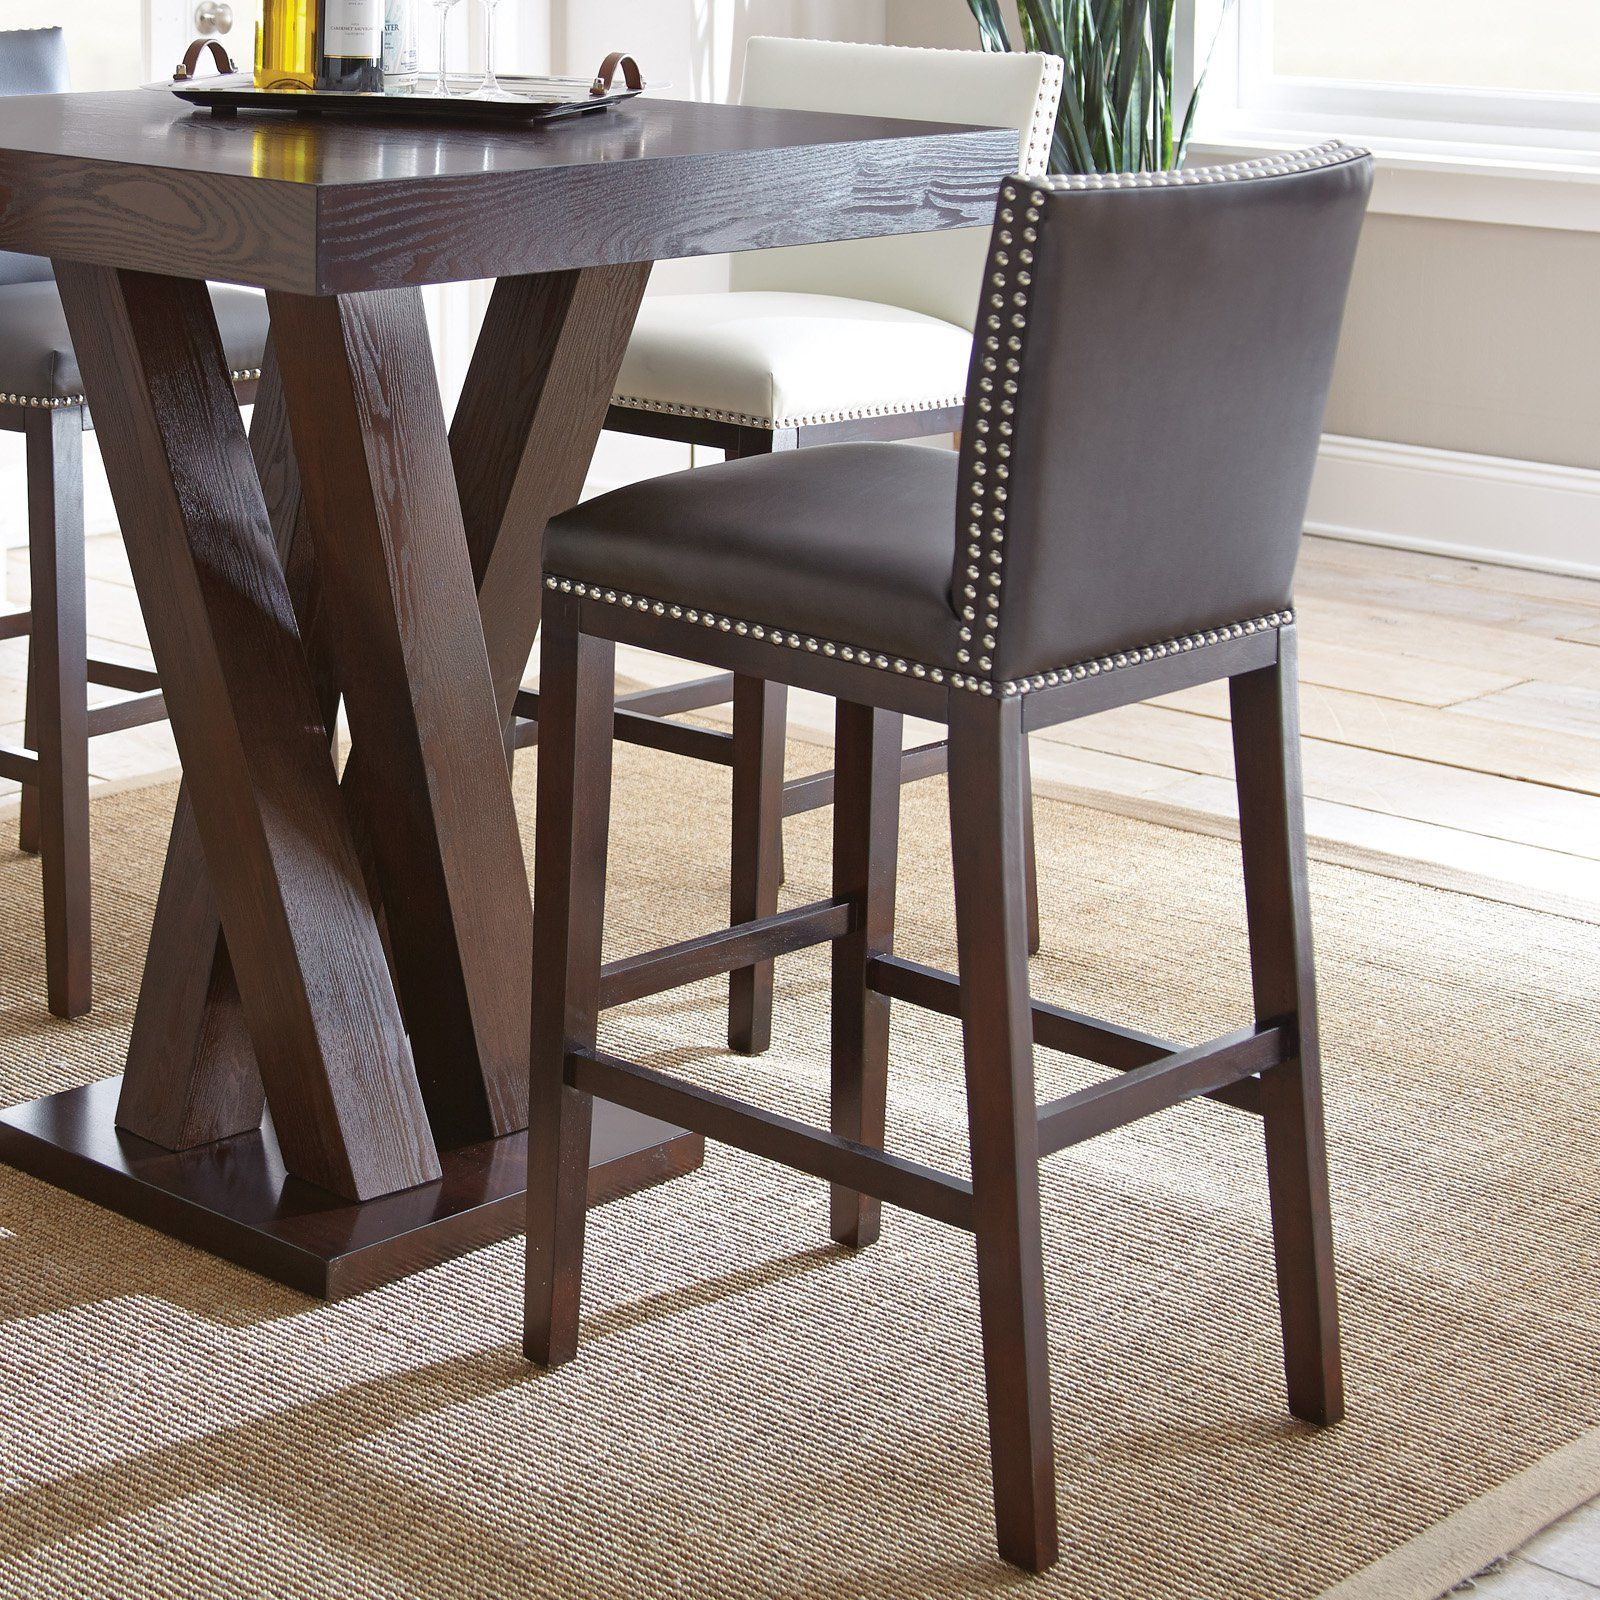 Steve Silver Tiffany Bonded Bar Chair Set Of 2 From